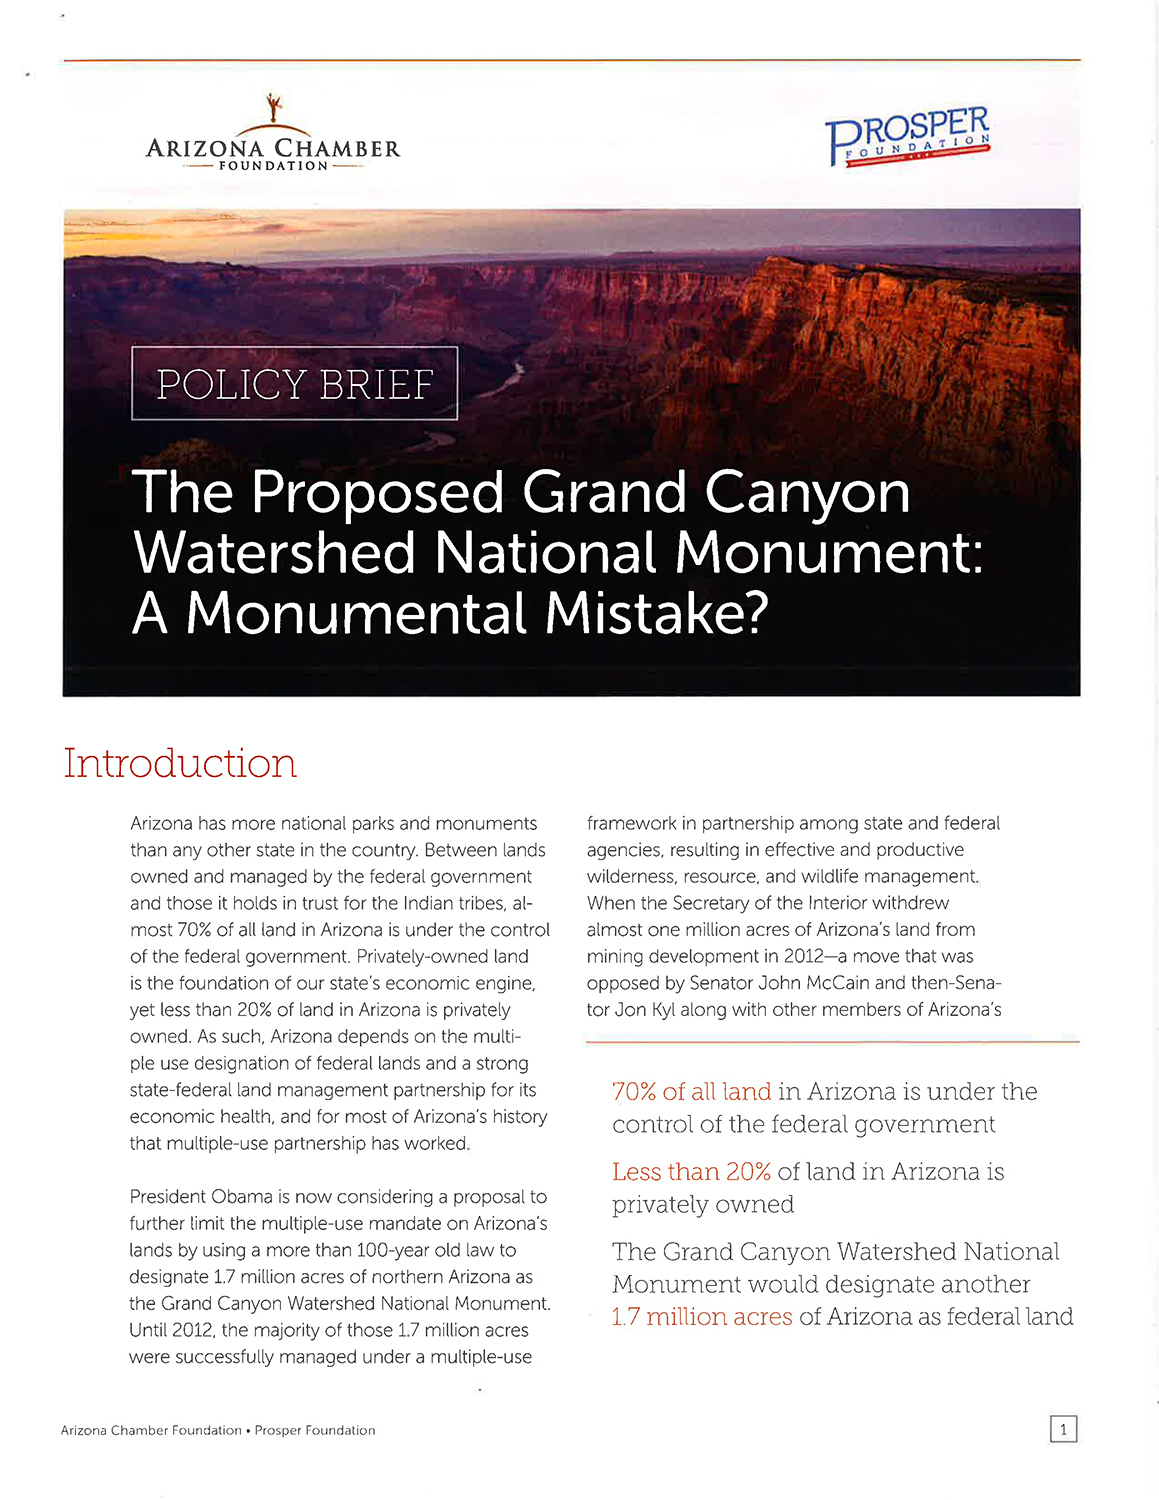 Grand Canyon Monument policy brief